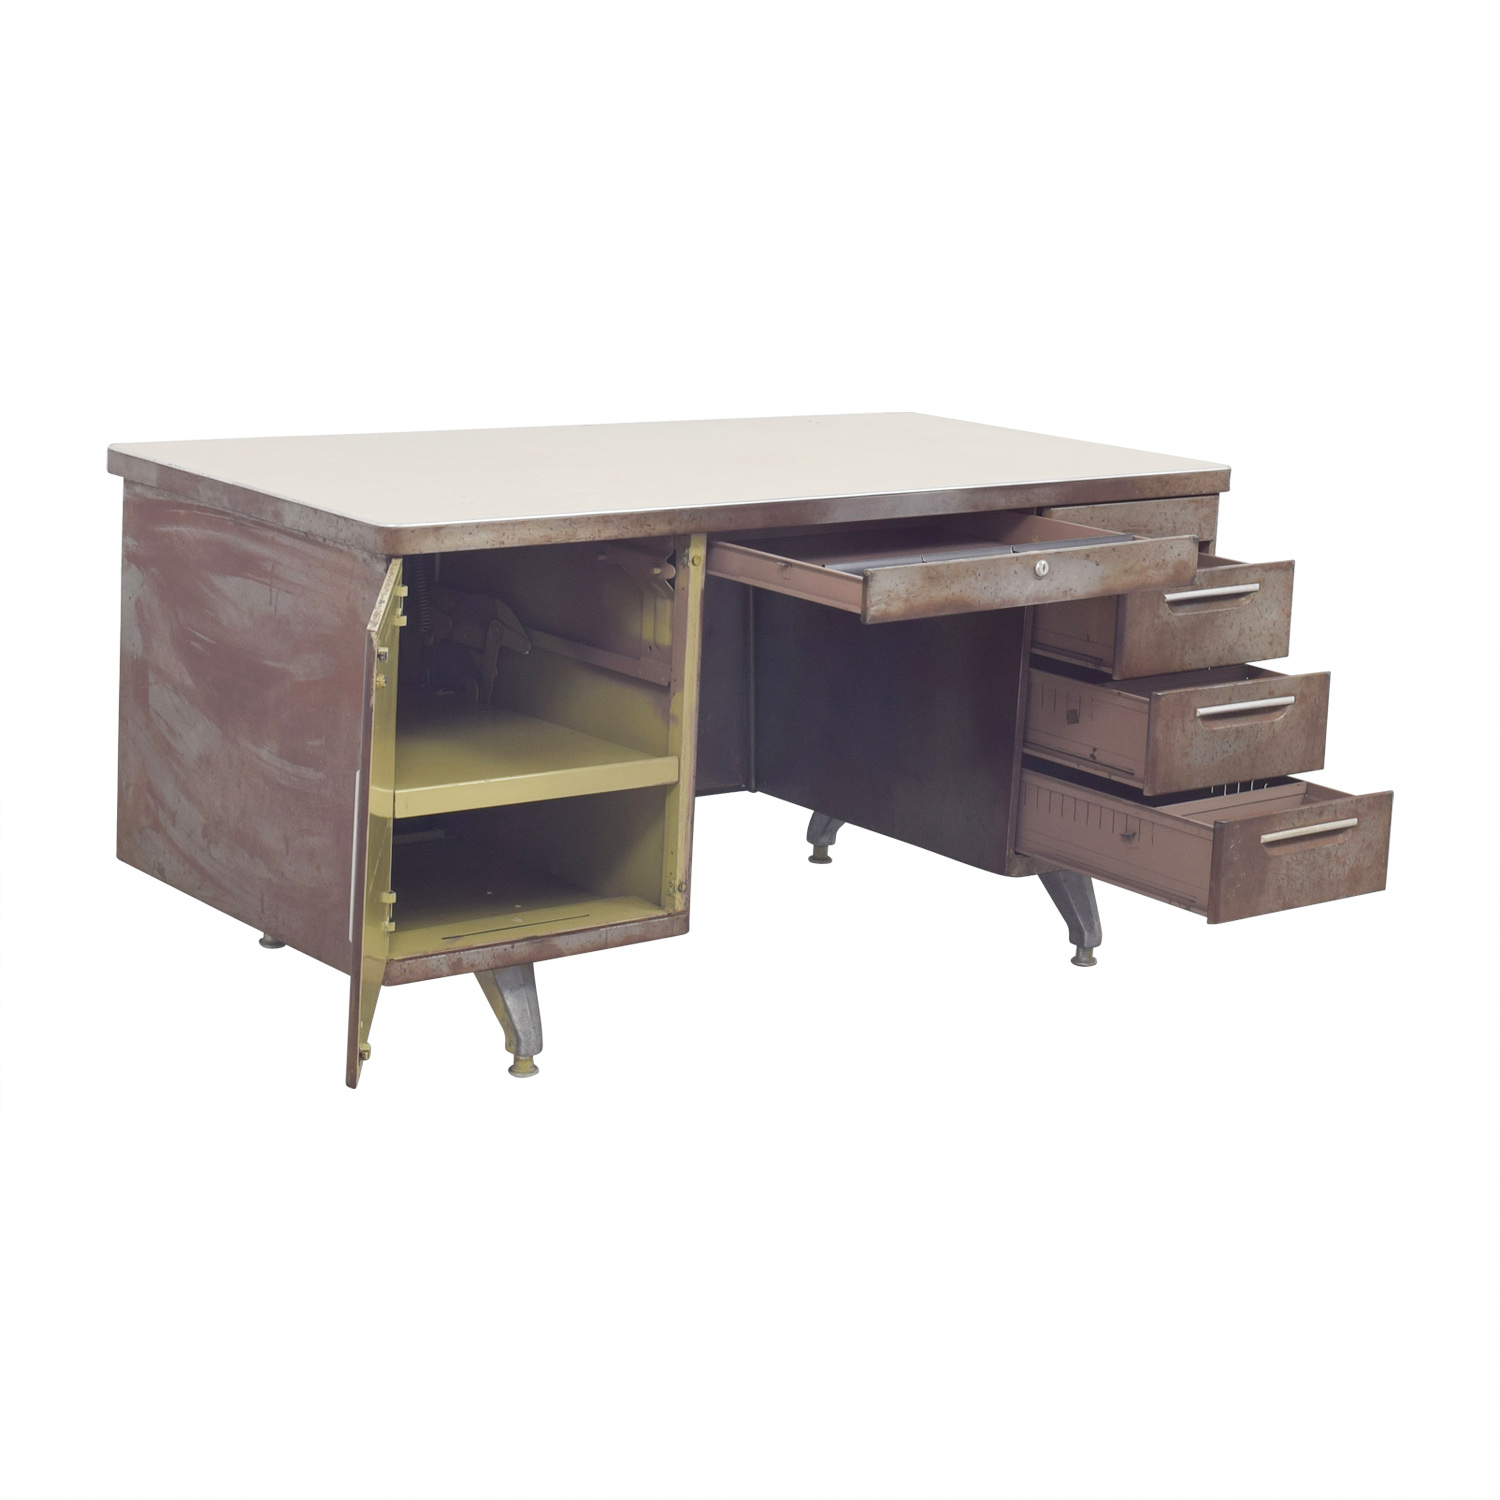 89 Off Shaw Walker Shaw Walker Rustic Metal Desk Tables